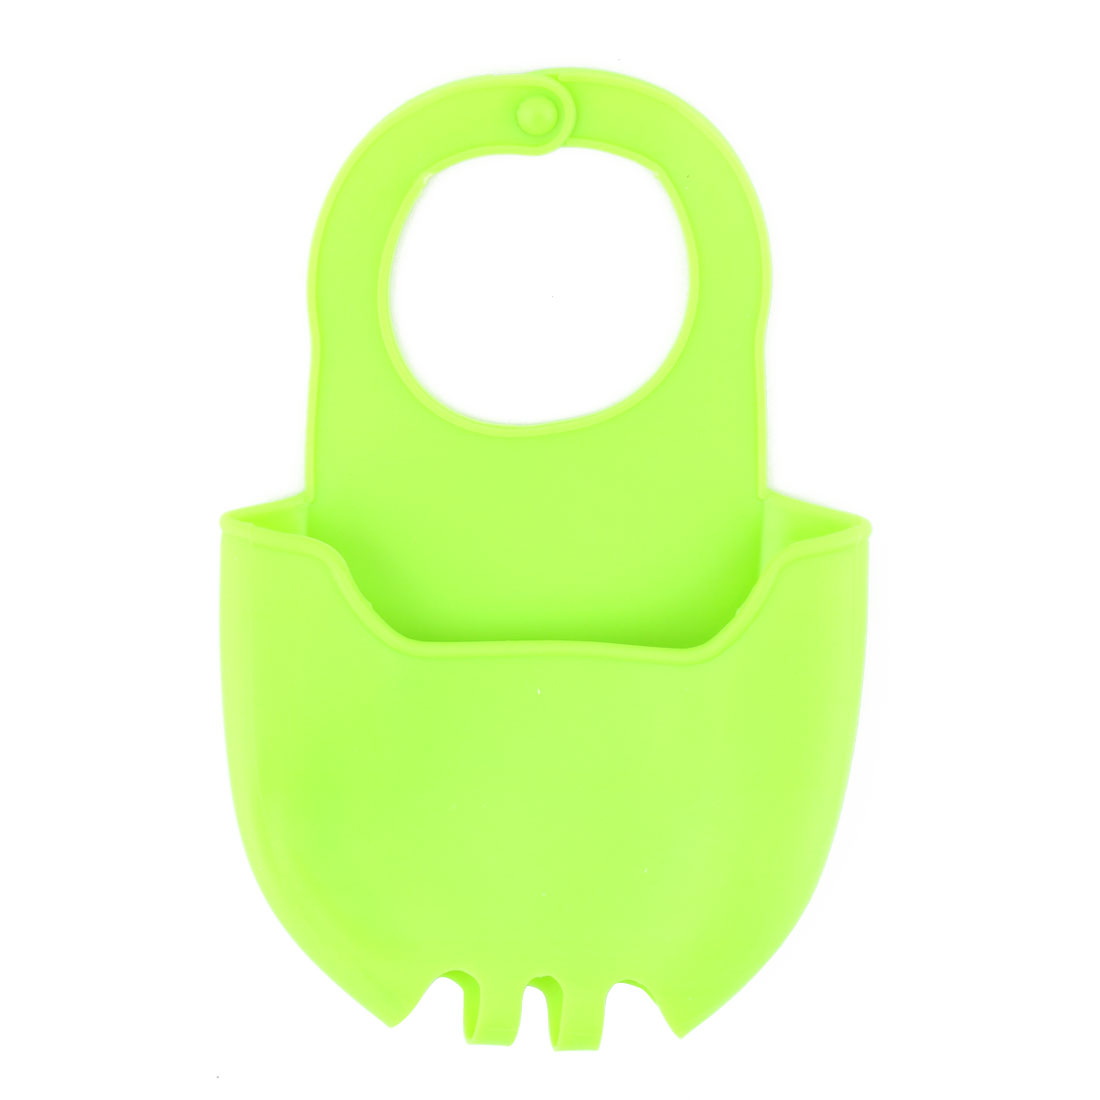 Home Kitchen Silicone Sponge Washing Cleaning Tool Holder Basket Drainer Green